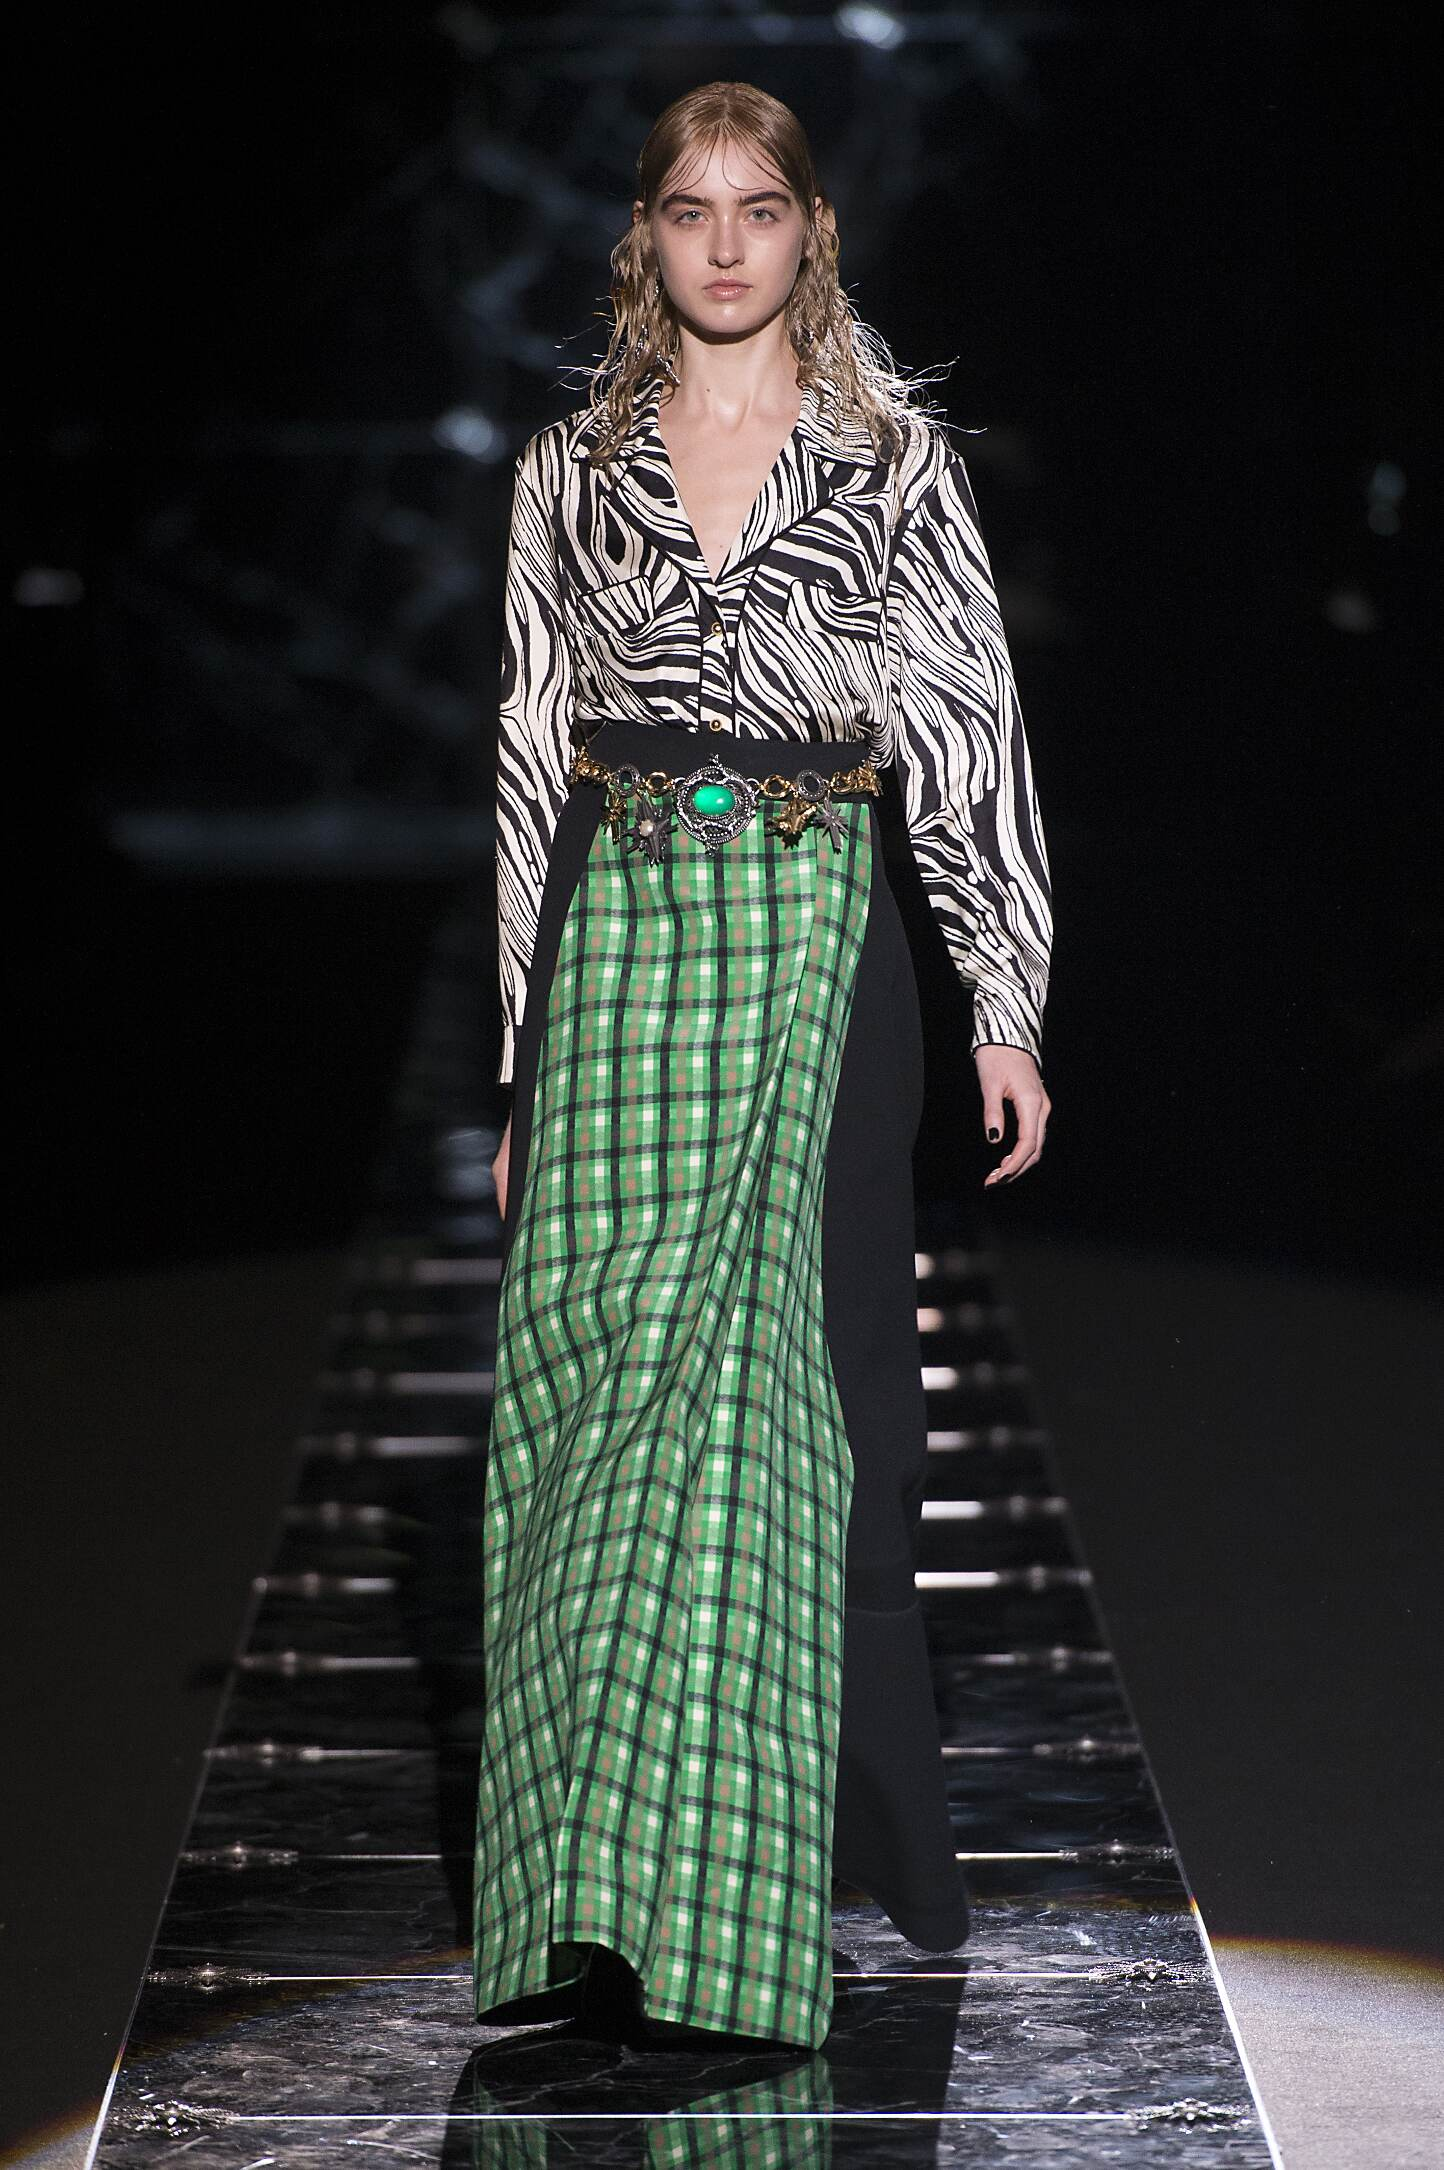 Fausto Puglisi Collection Catwalk